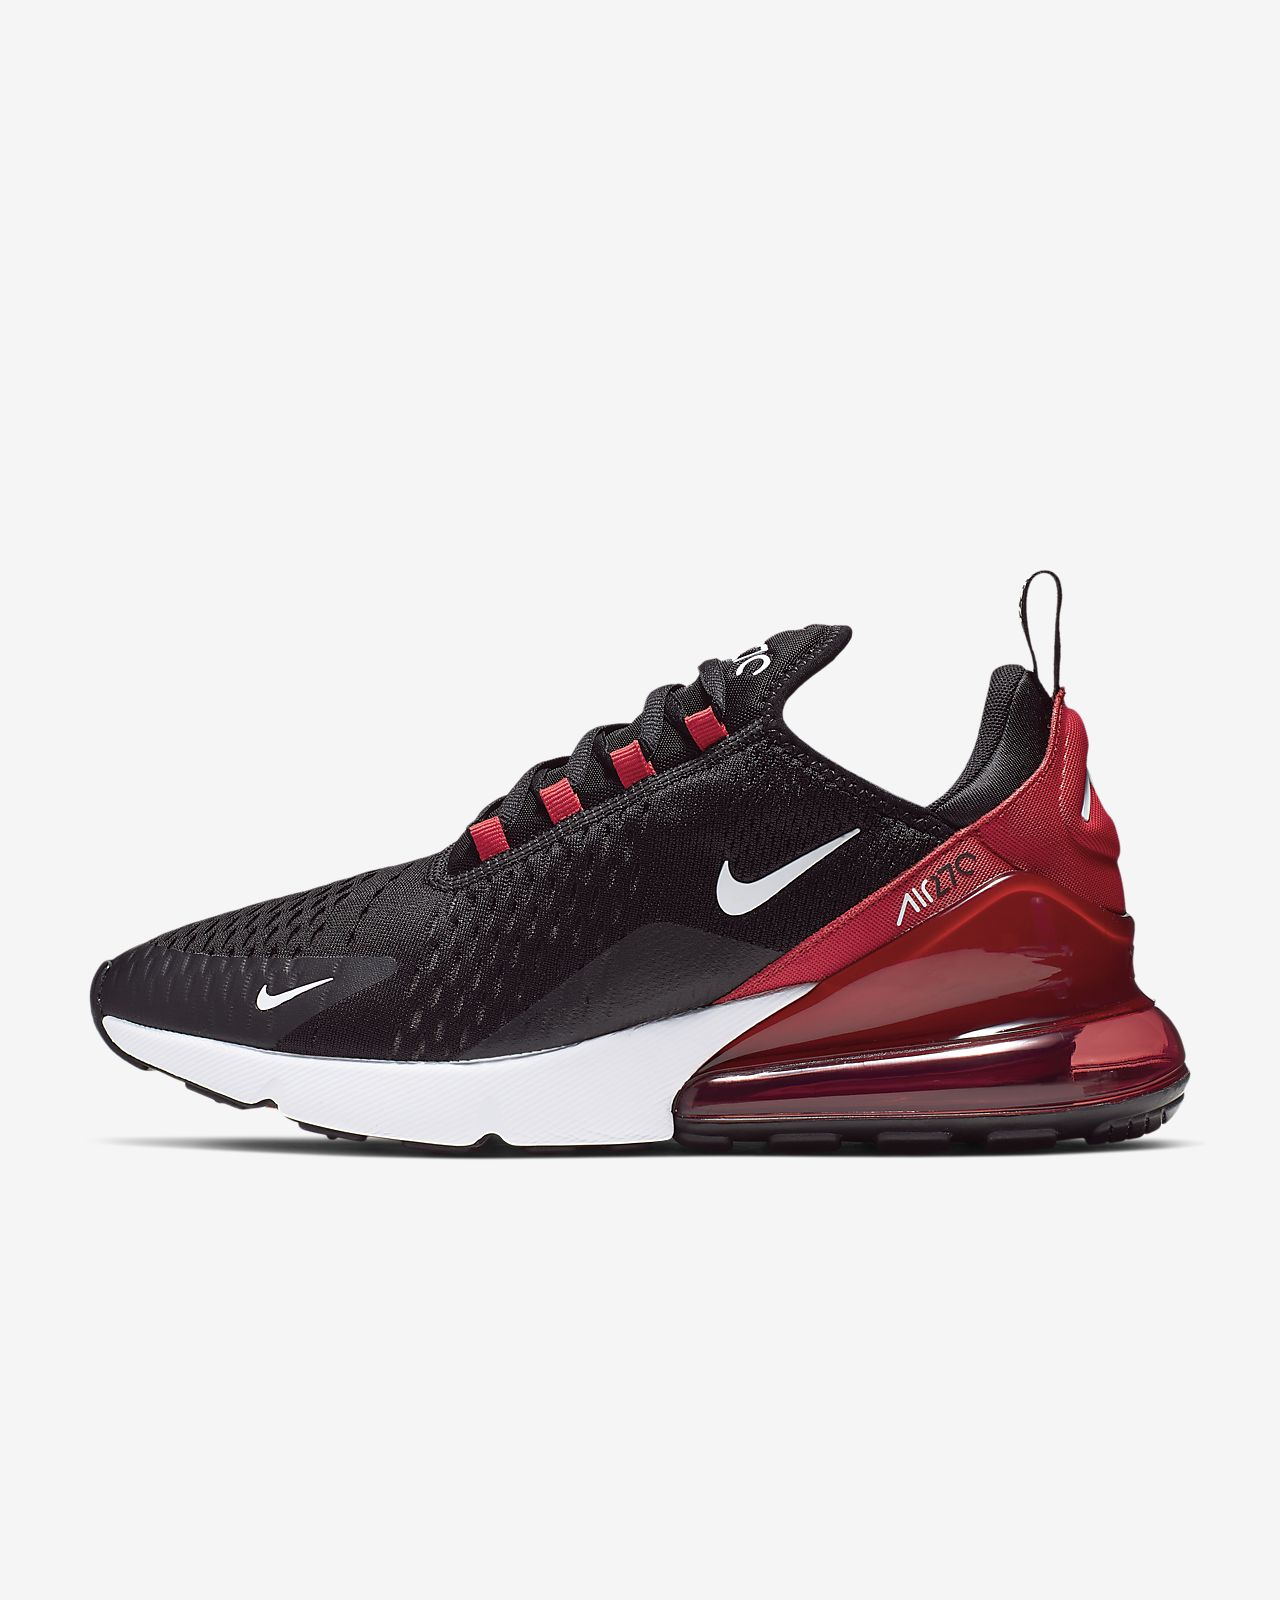 64d935c829b Nike Air Max 270 Men s Shoe. Nike.com GB